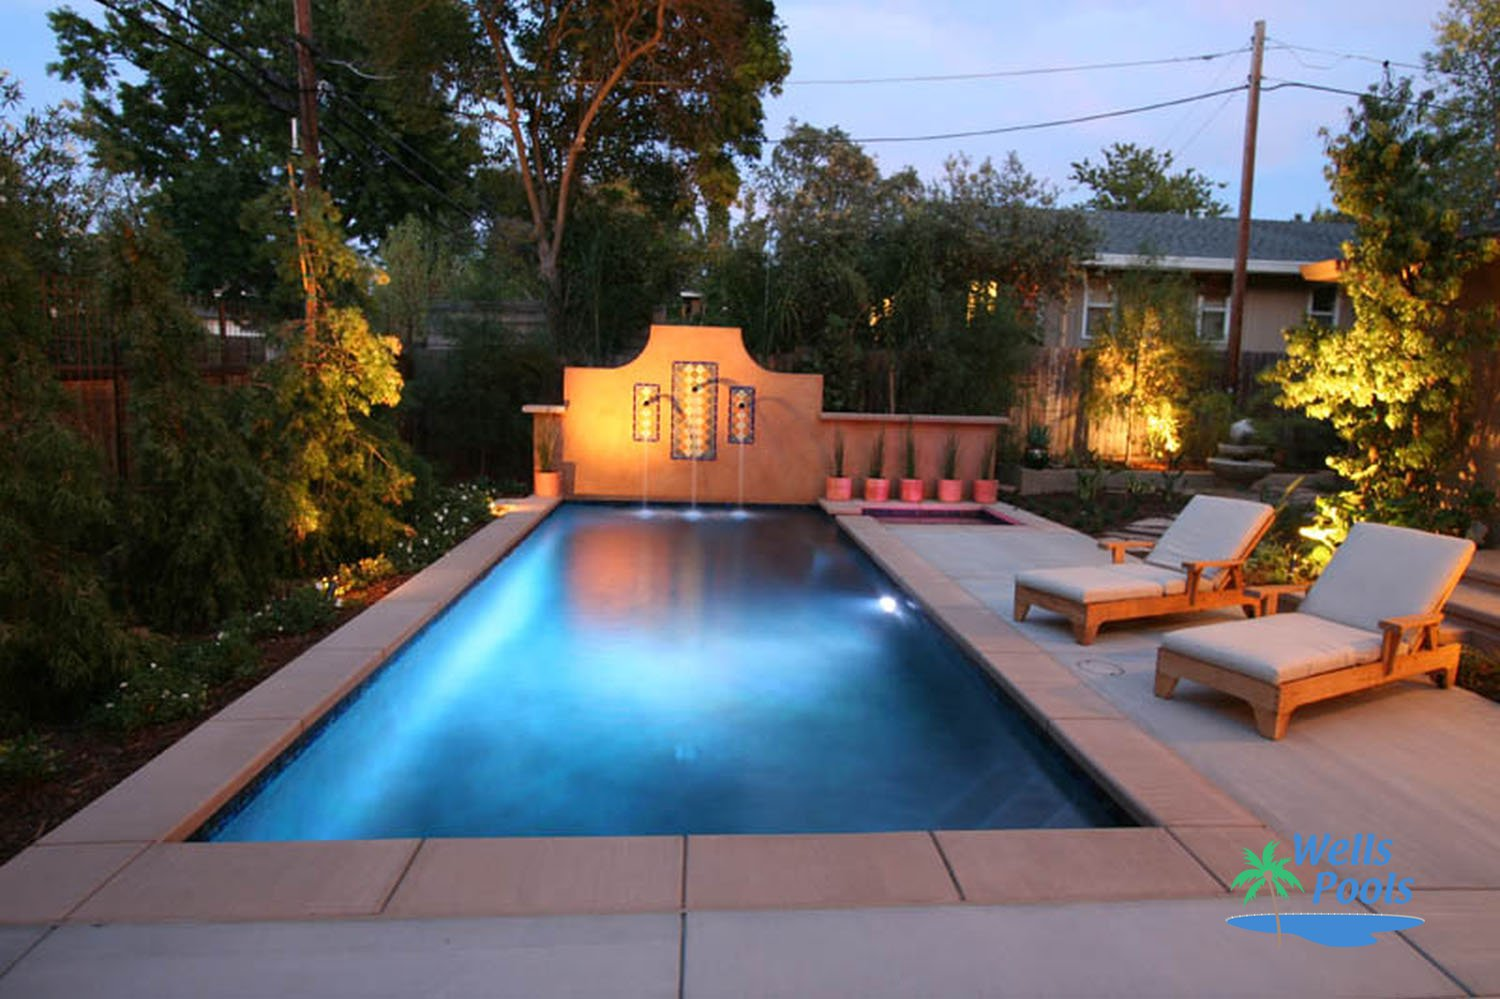 24 Small Pool Ideas To Turn Your Small Backyard Into Relaxing ...